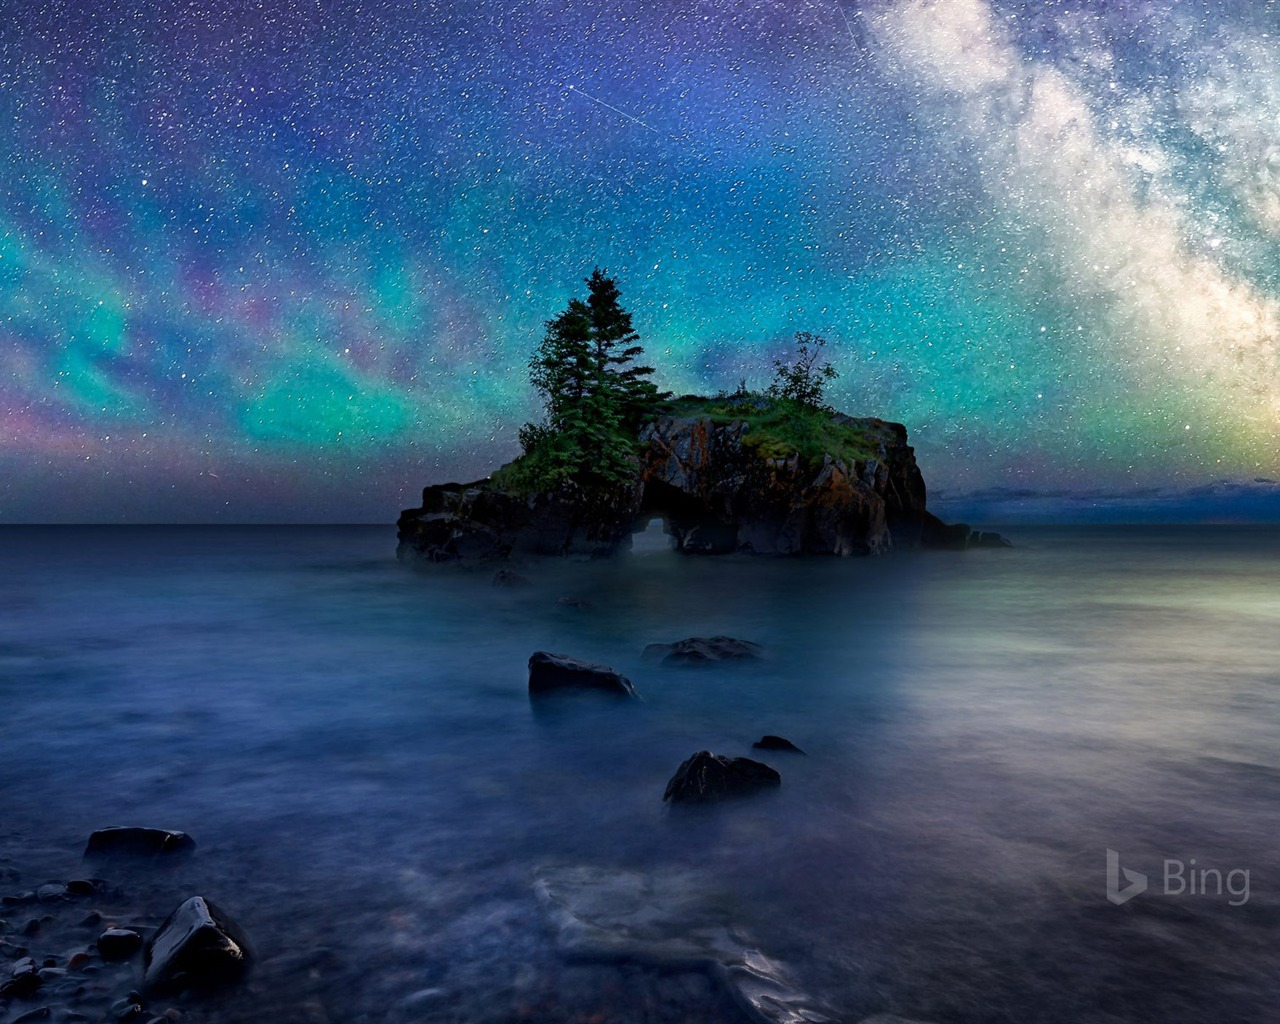 Goggles Girl Hd Wallpapers Minnesota North Shore Of Lake Superior 2018 Bing Preview